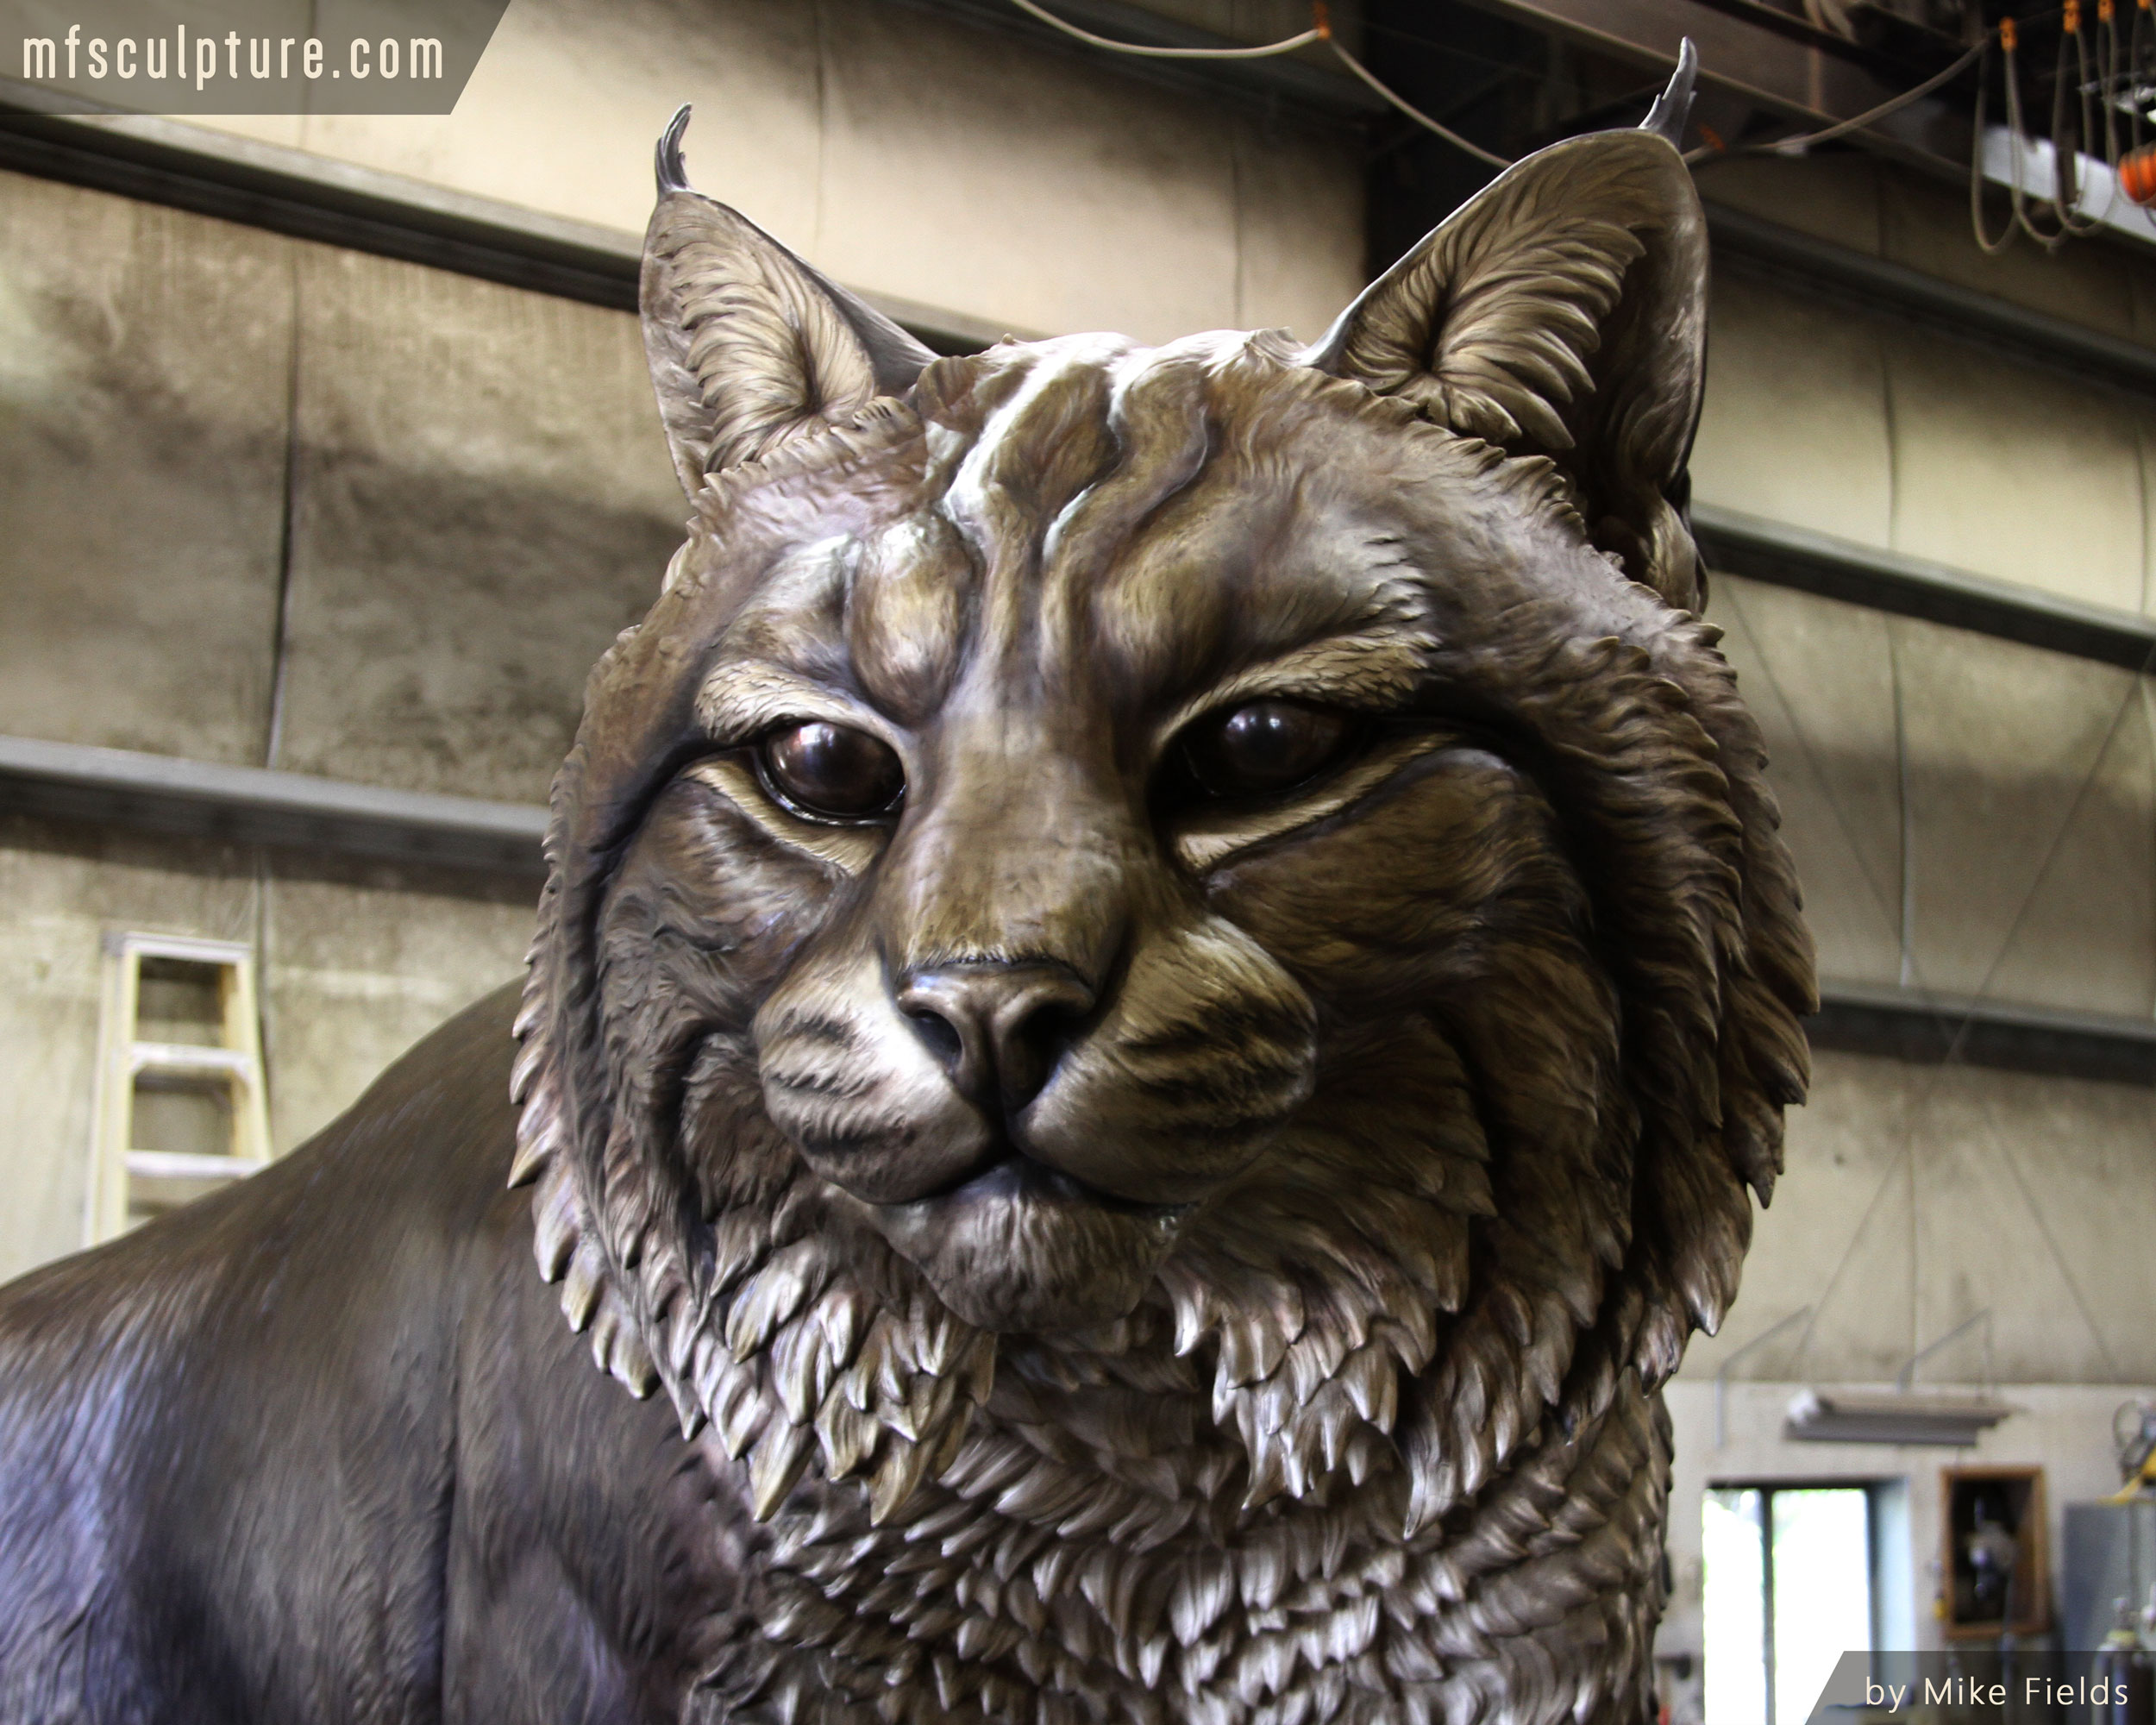 Johnson-&-Wales-University-Monument-Wildcat-Mascot-Mike-Fields-4